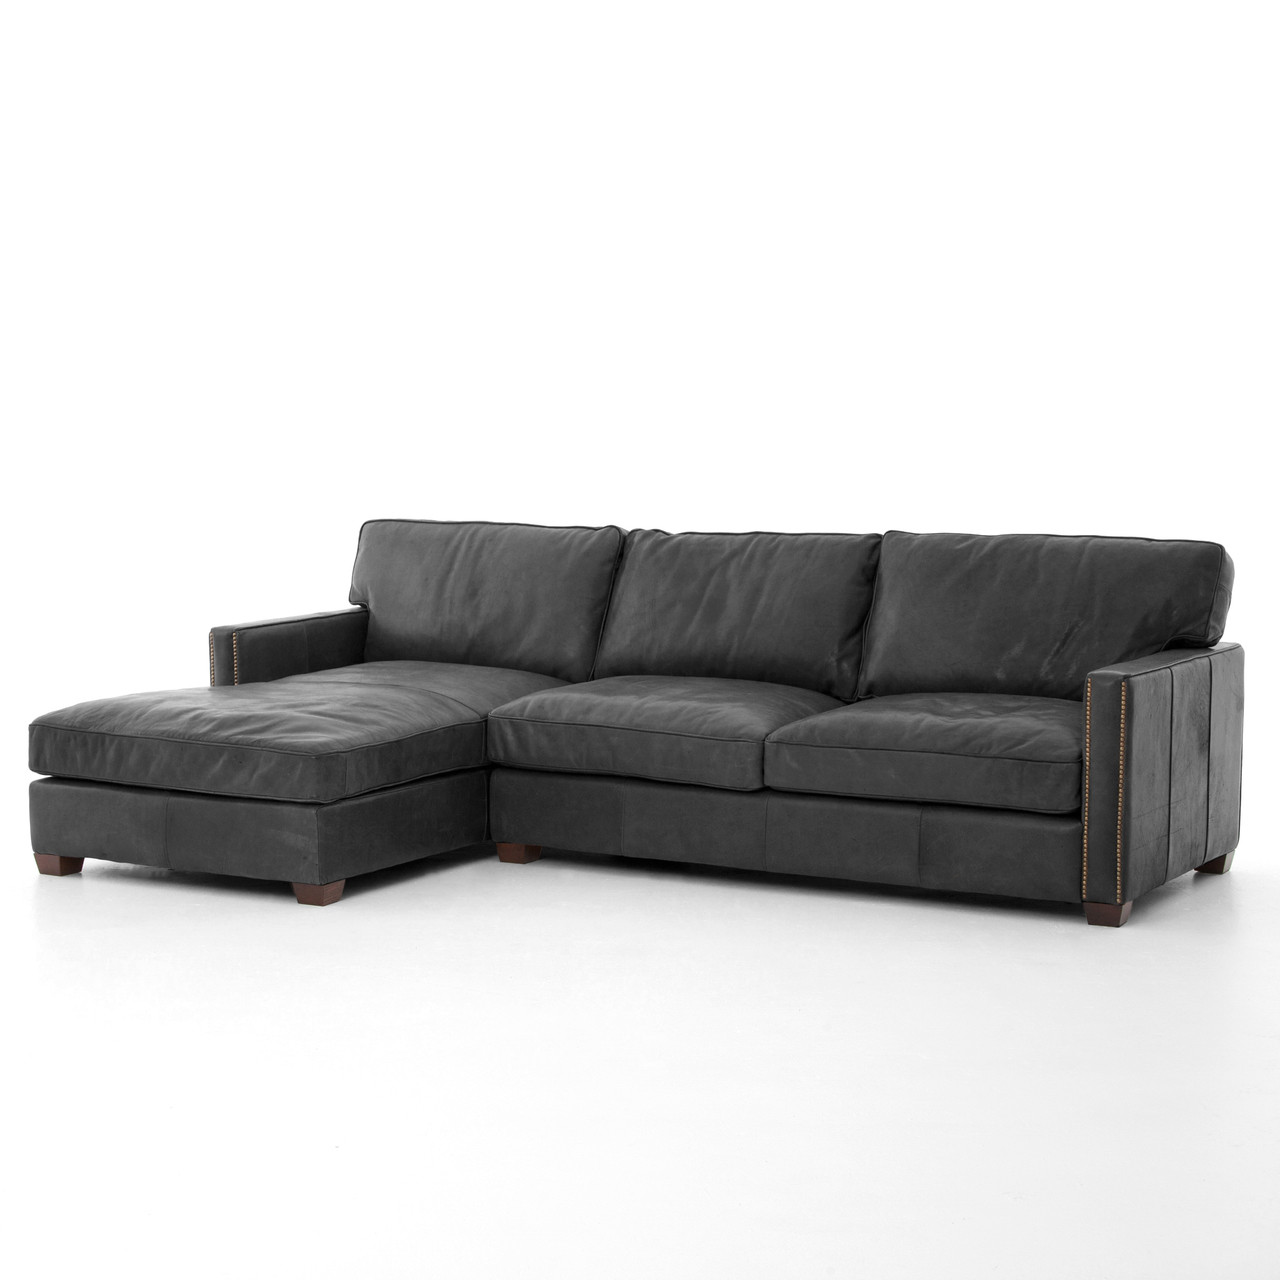 Larkin Vintage Black Leather Sectional Sofa with Chaise Zin Home